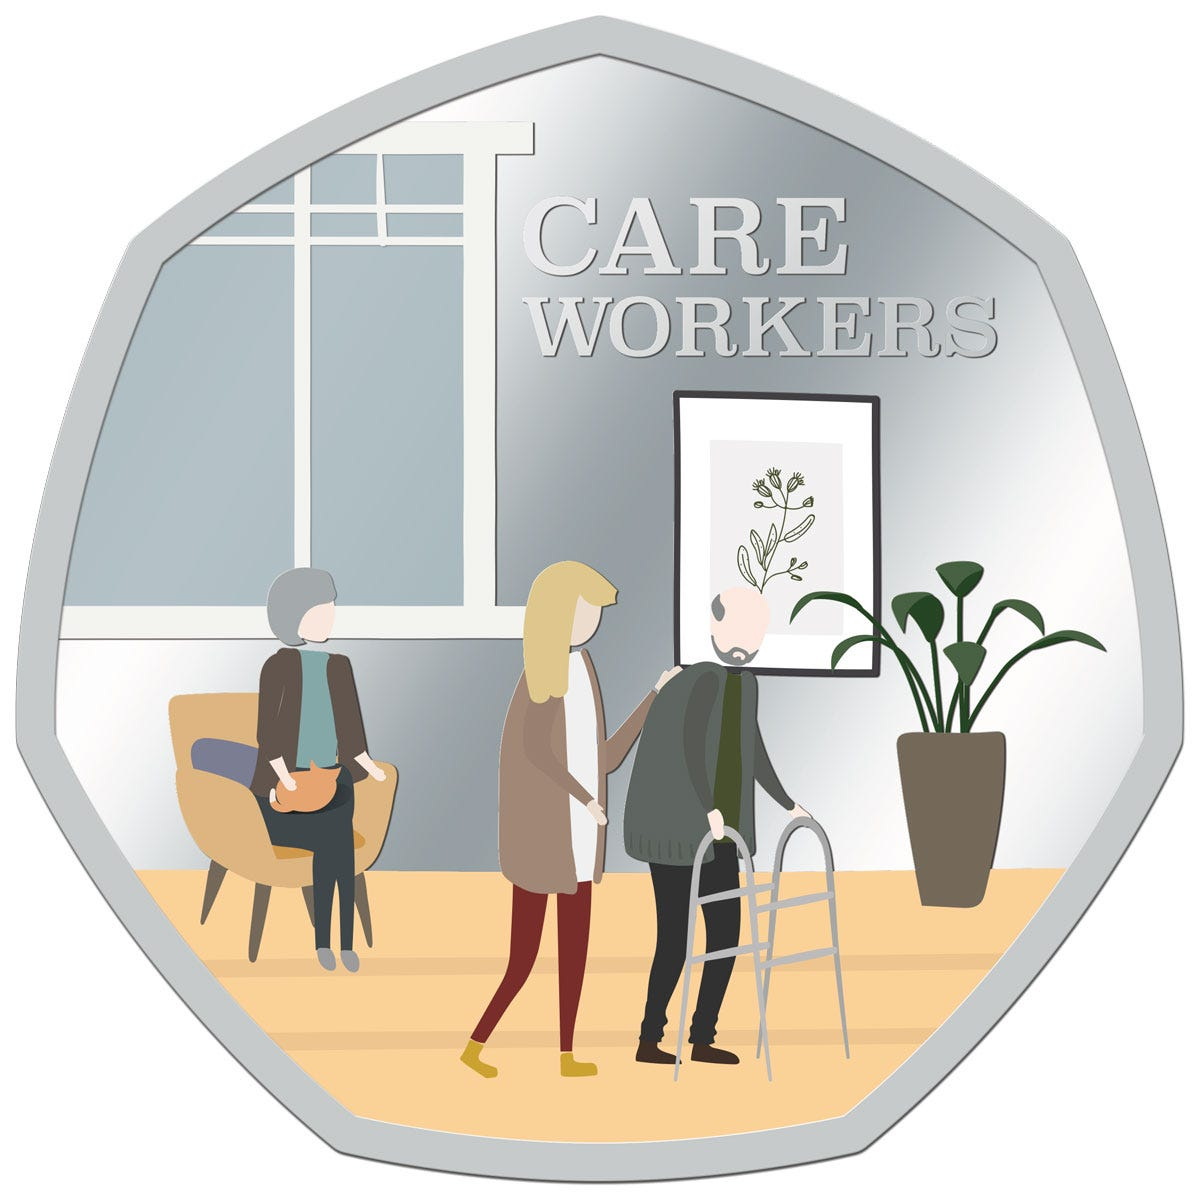 Thank-you Care Workers